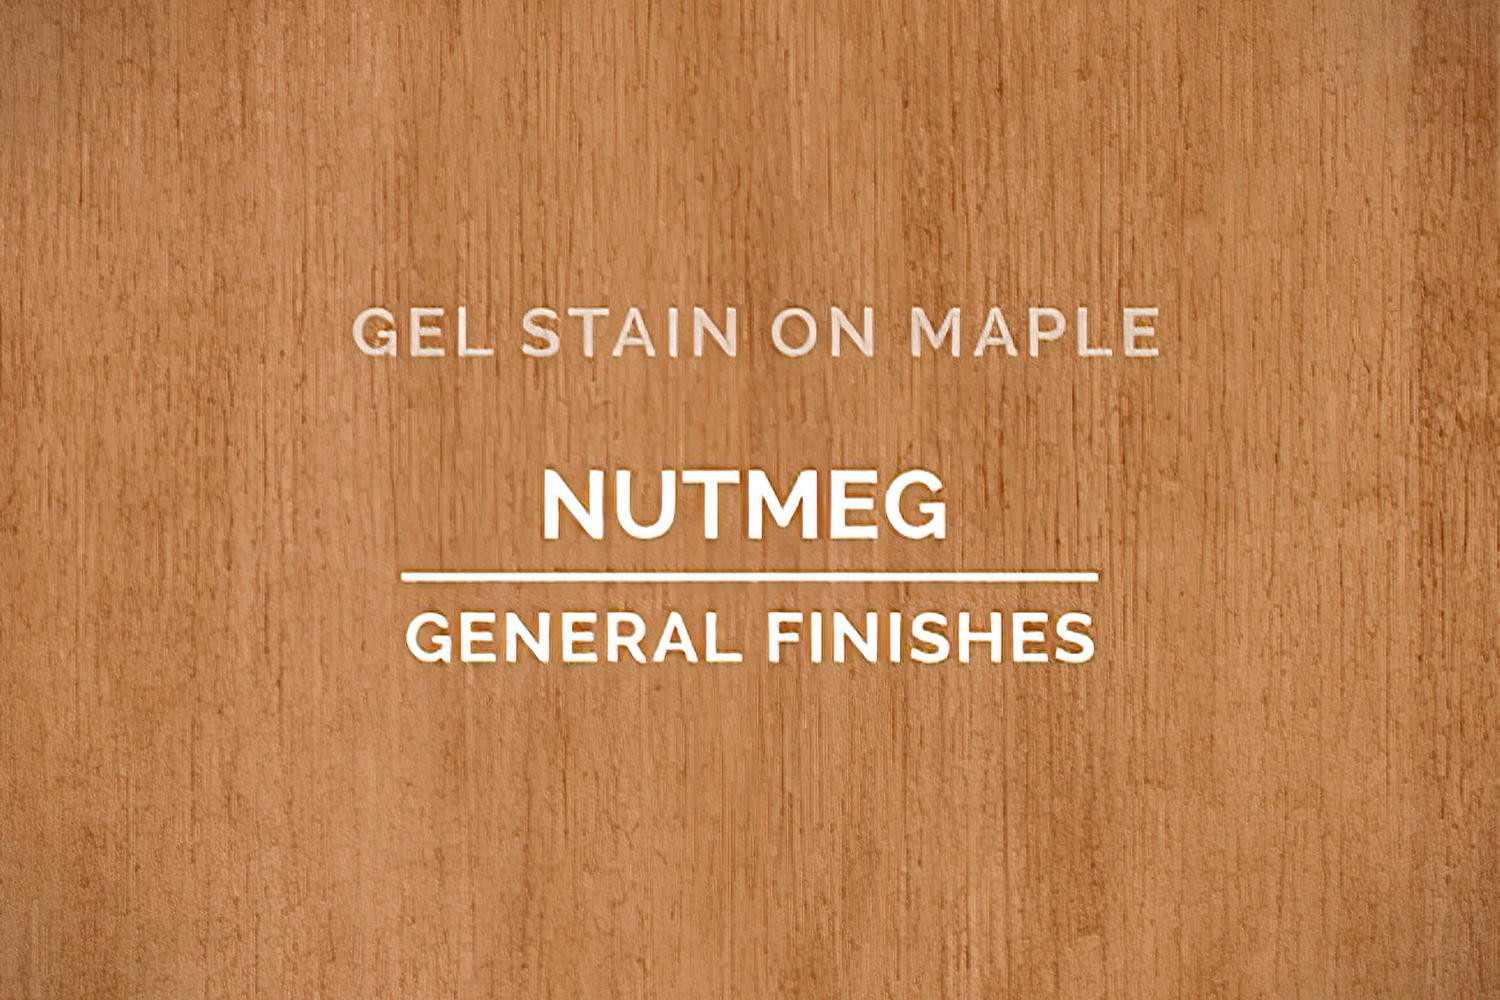 Stains. Gel Based Stains, Nutmeg. General Finishes,